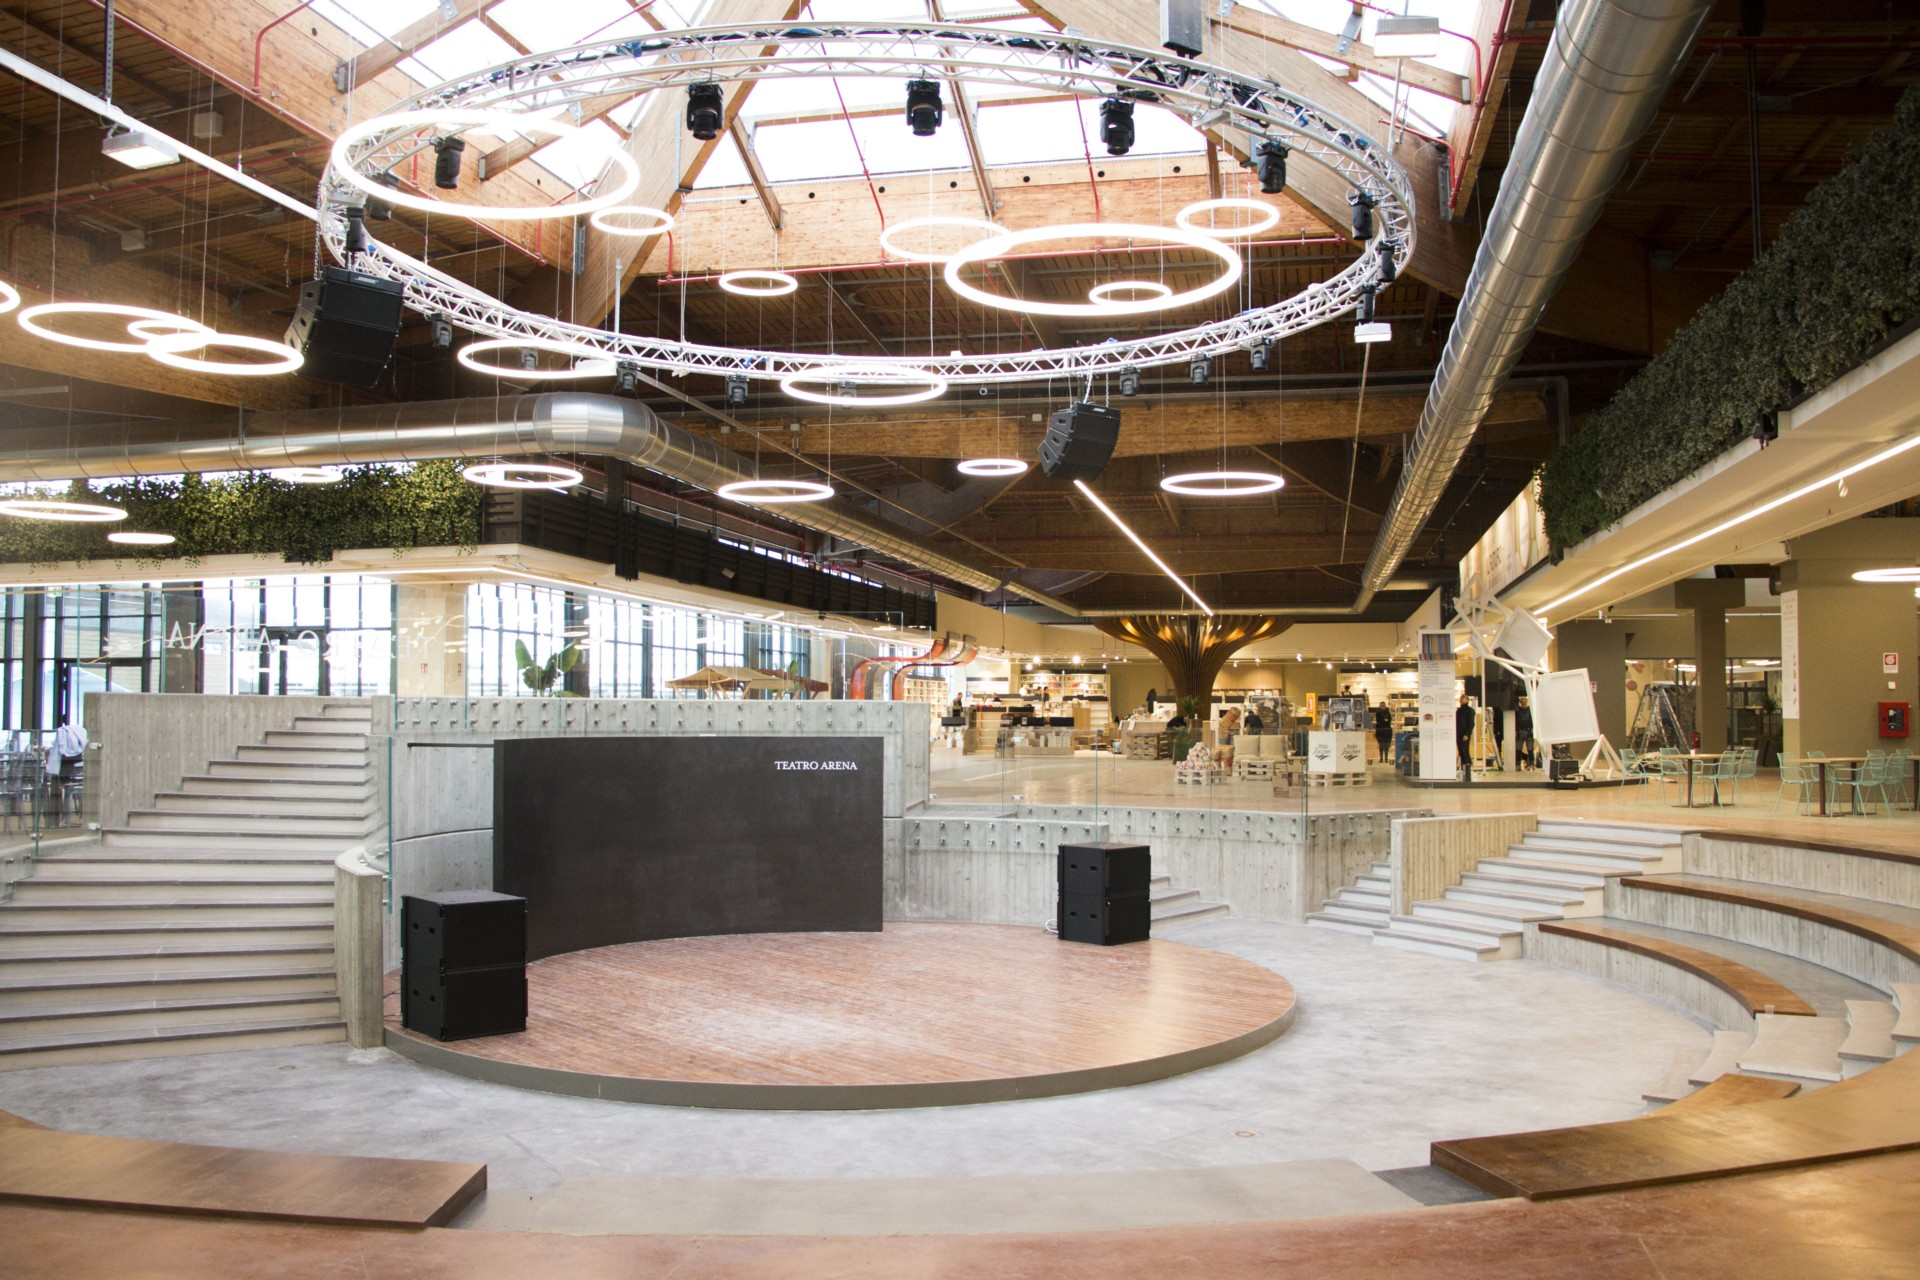 Interview with Thomas Bartoli, architect in charge of Eataly Design